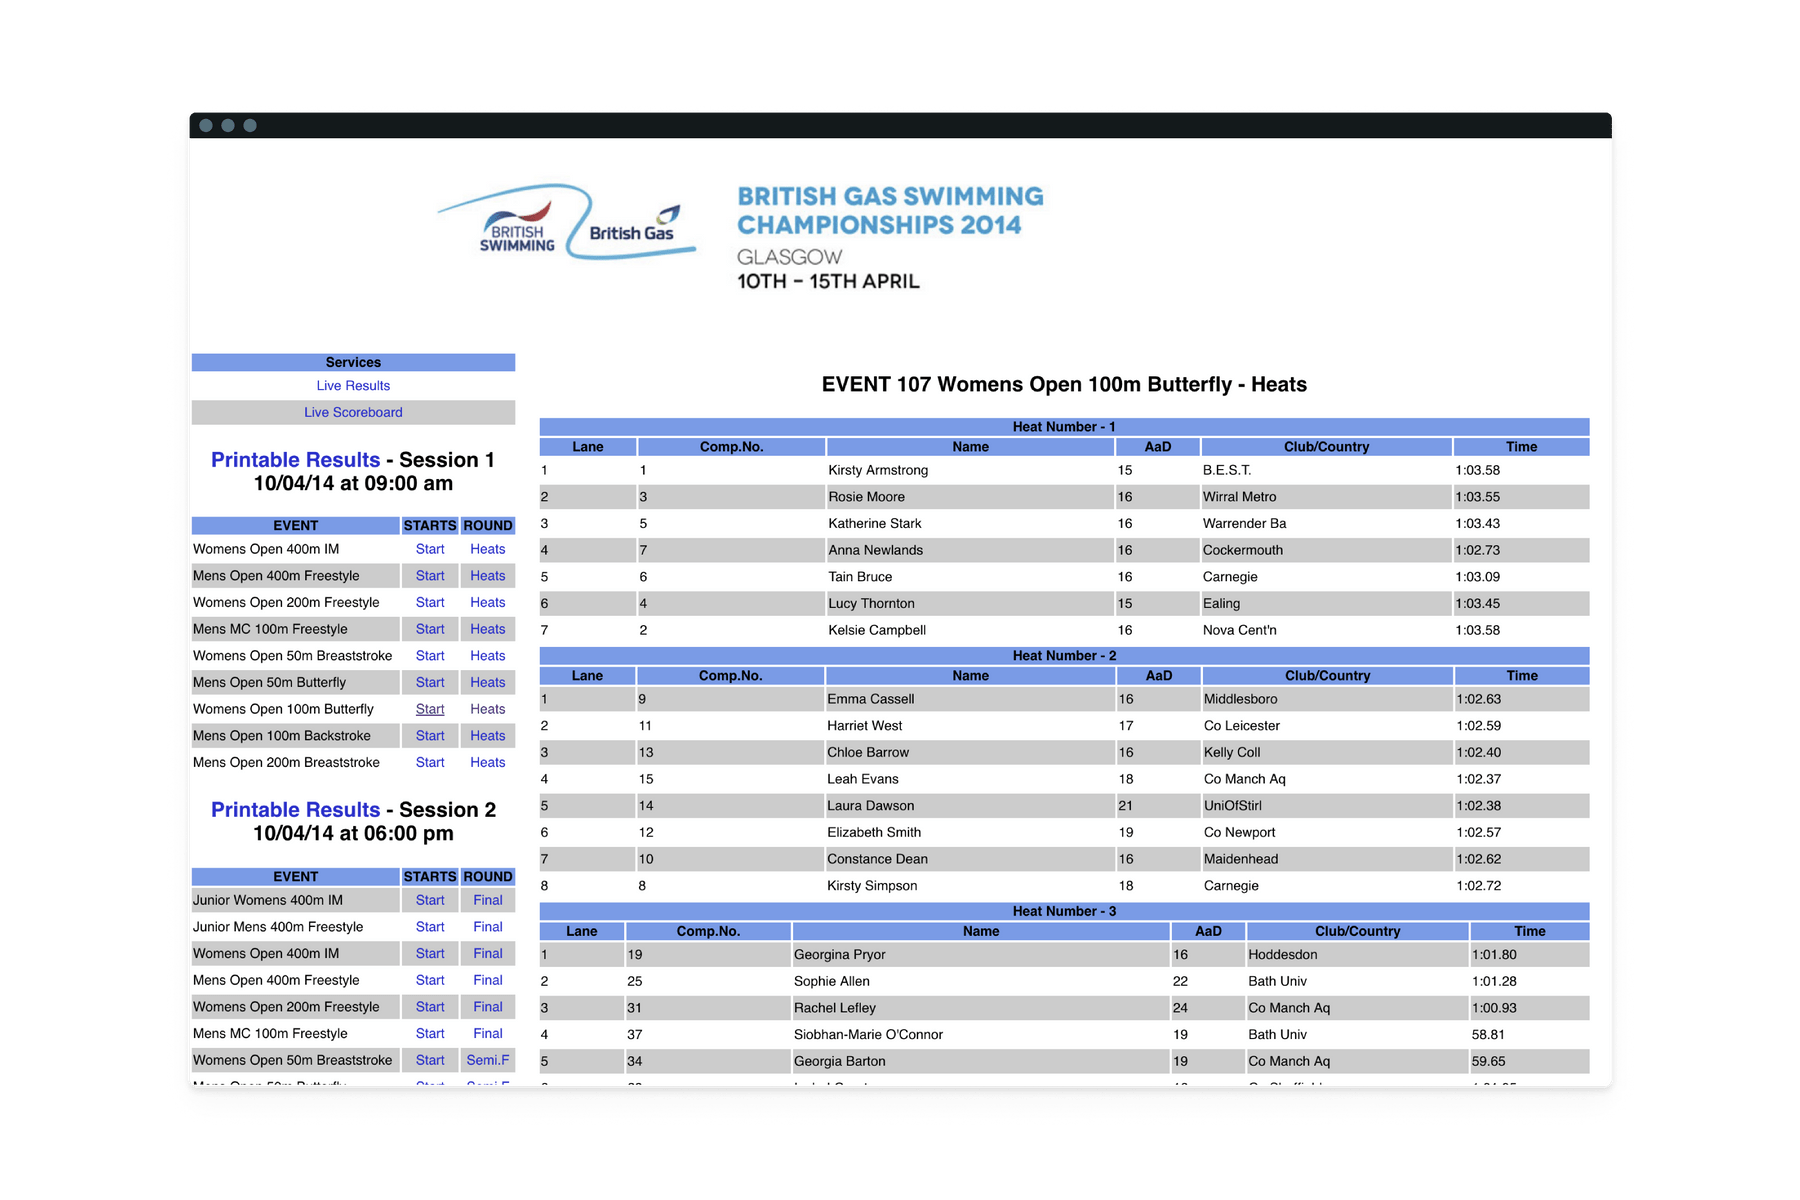 UI showing SportSystems full version of startlist for Women's 100m Butterfly